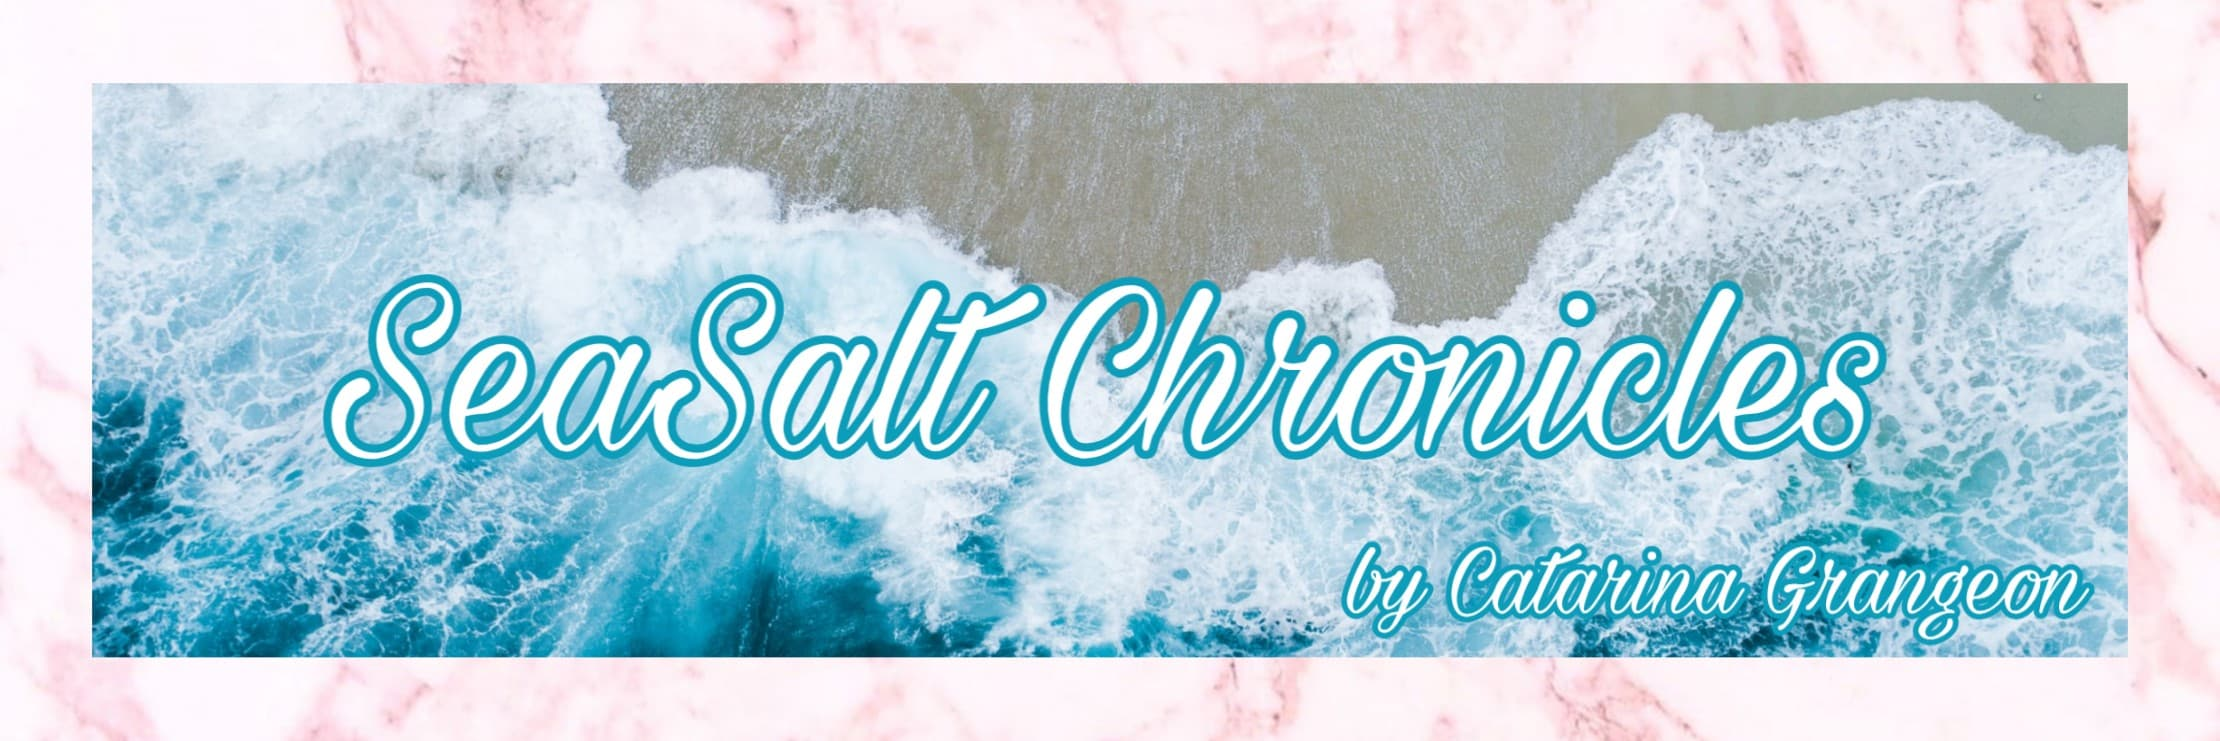 SeaSalt Chronicles Introduction